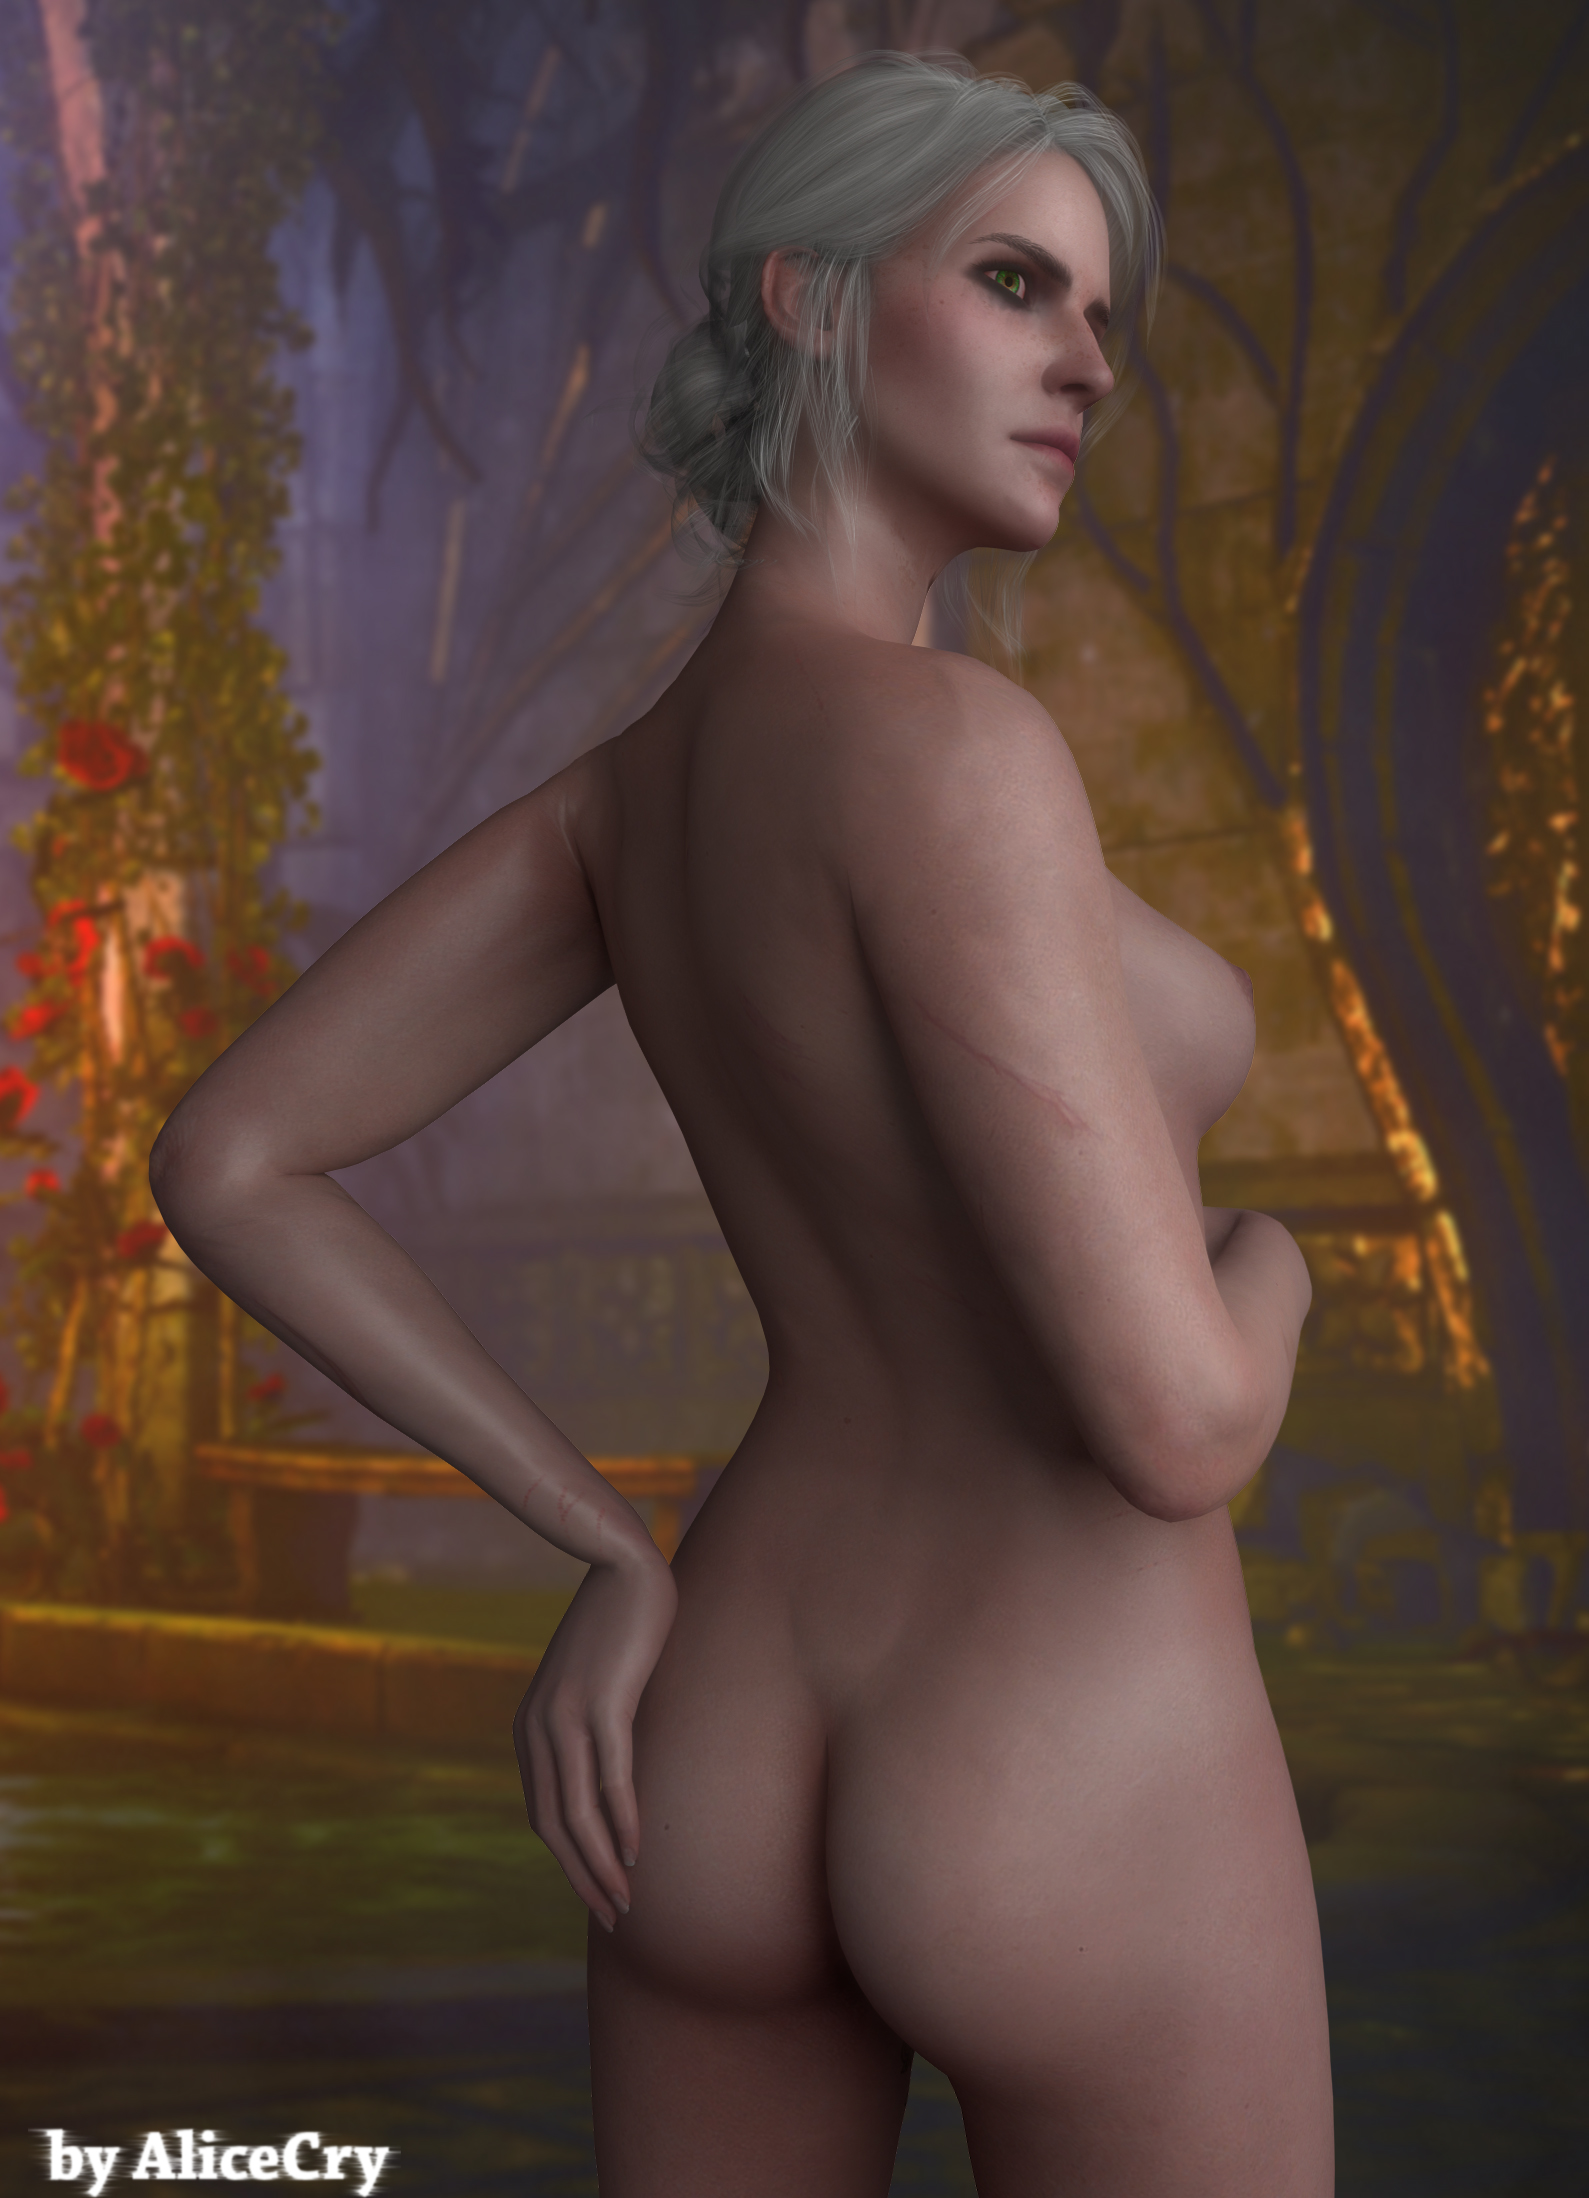 The witcher 3 nudes of girls erotica video